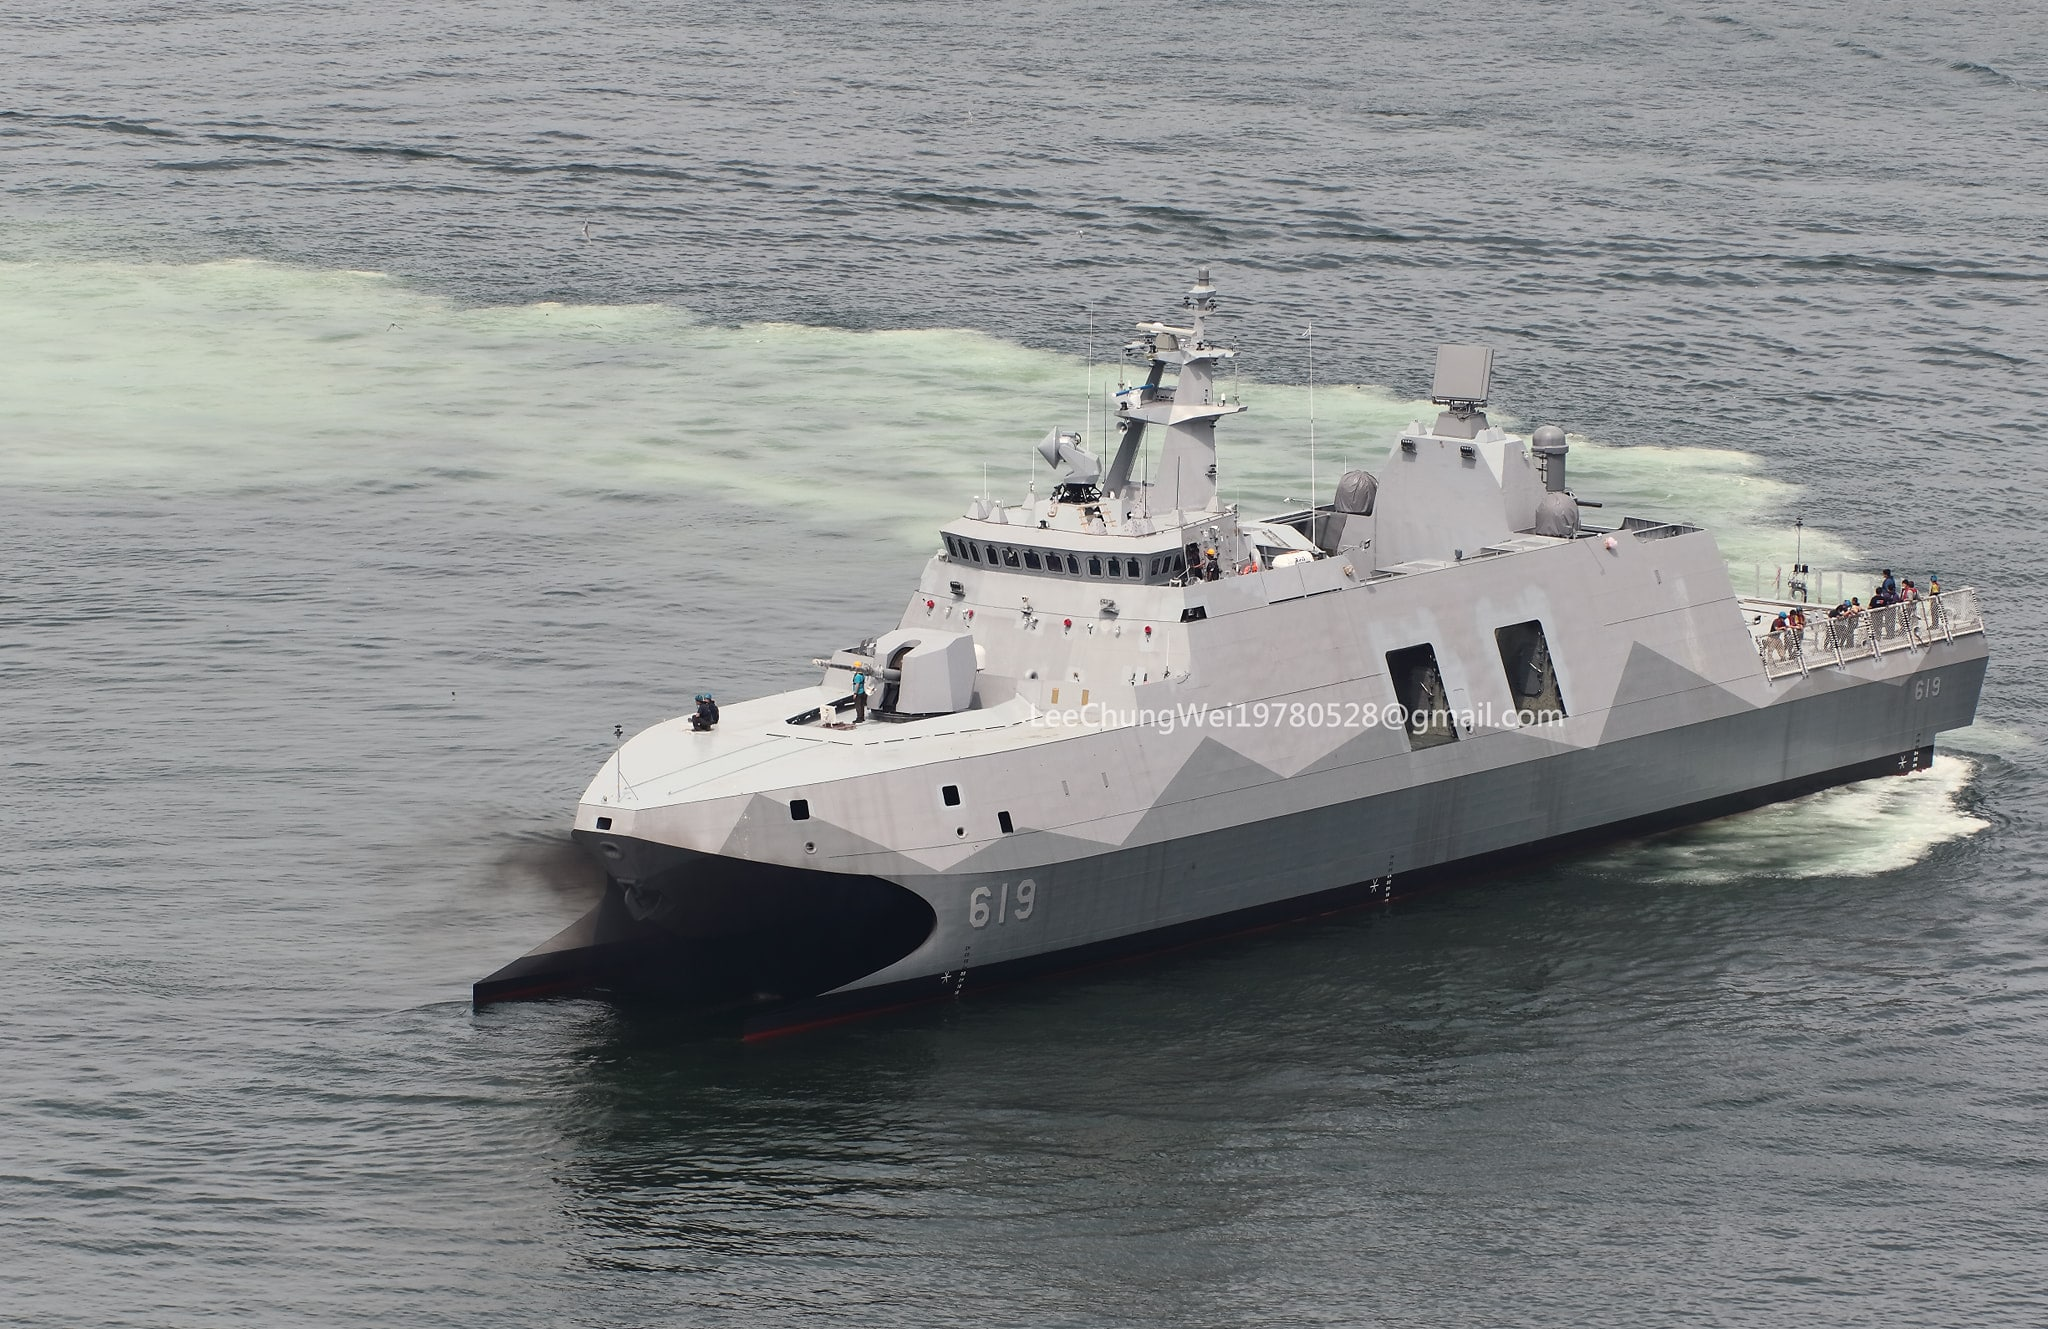 https://www.navalnews.com/wp-content/uploads/2021/05/Taiwans-first-upgraded-and-modified-Catamaran-corvette-started-sea-trial.jpg